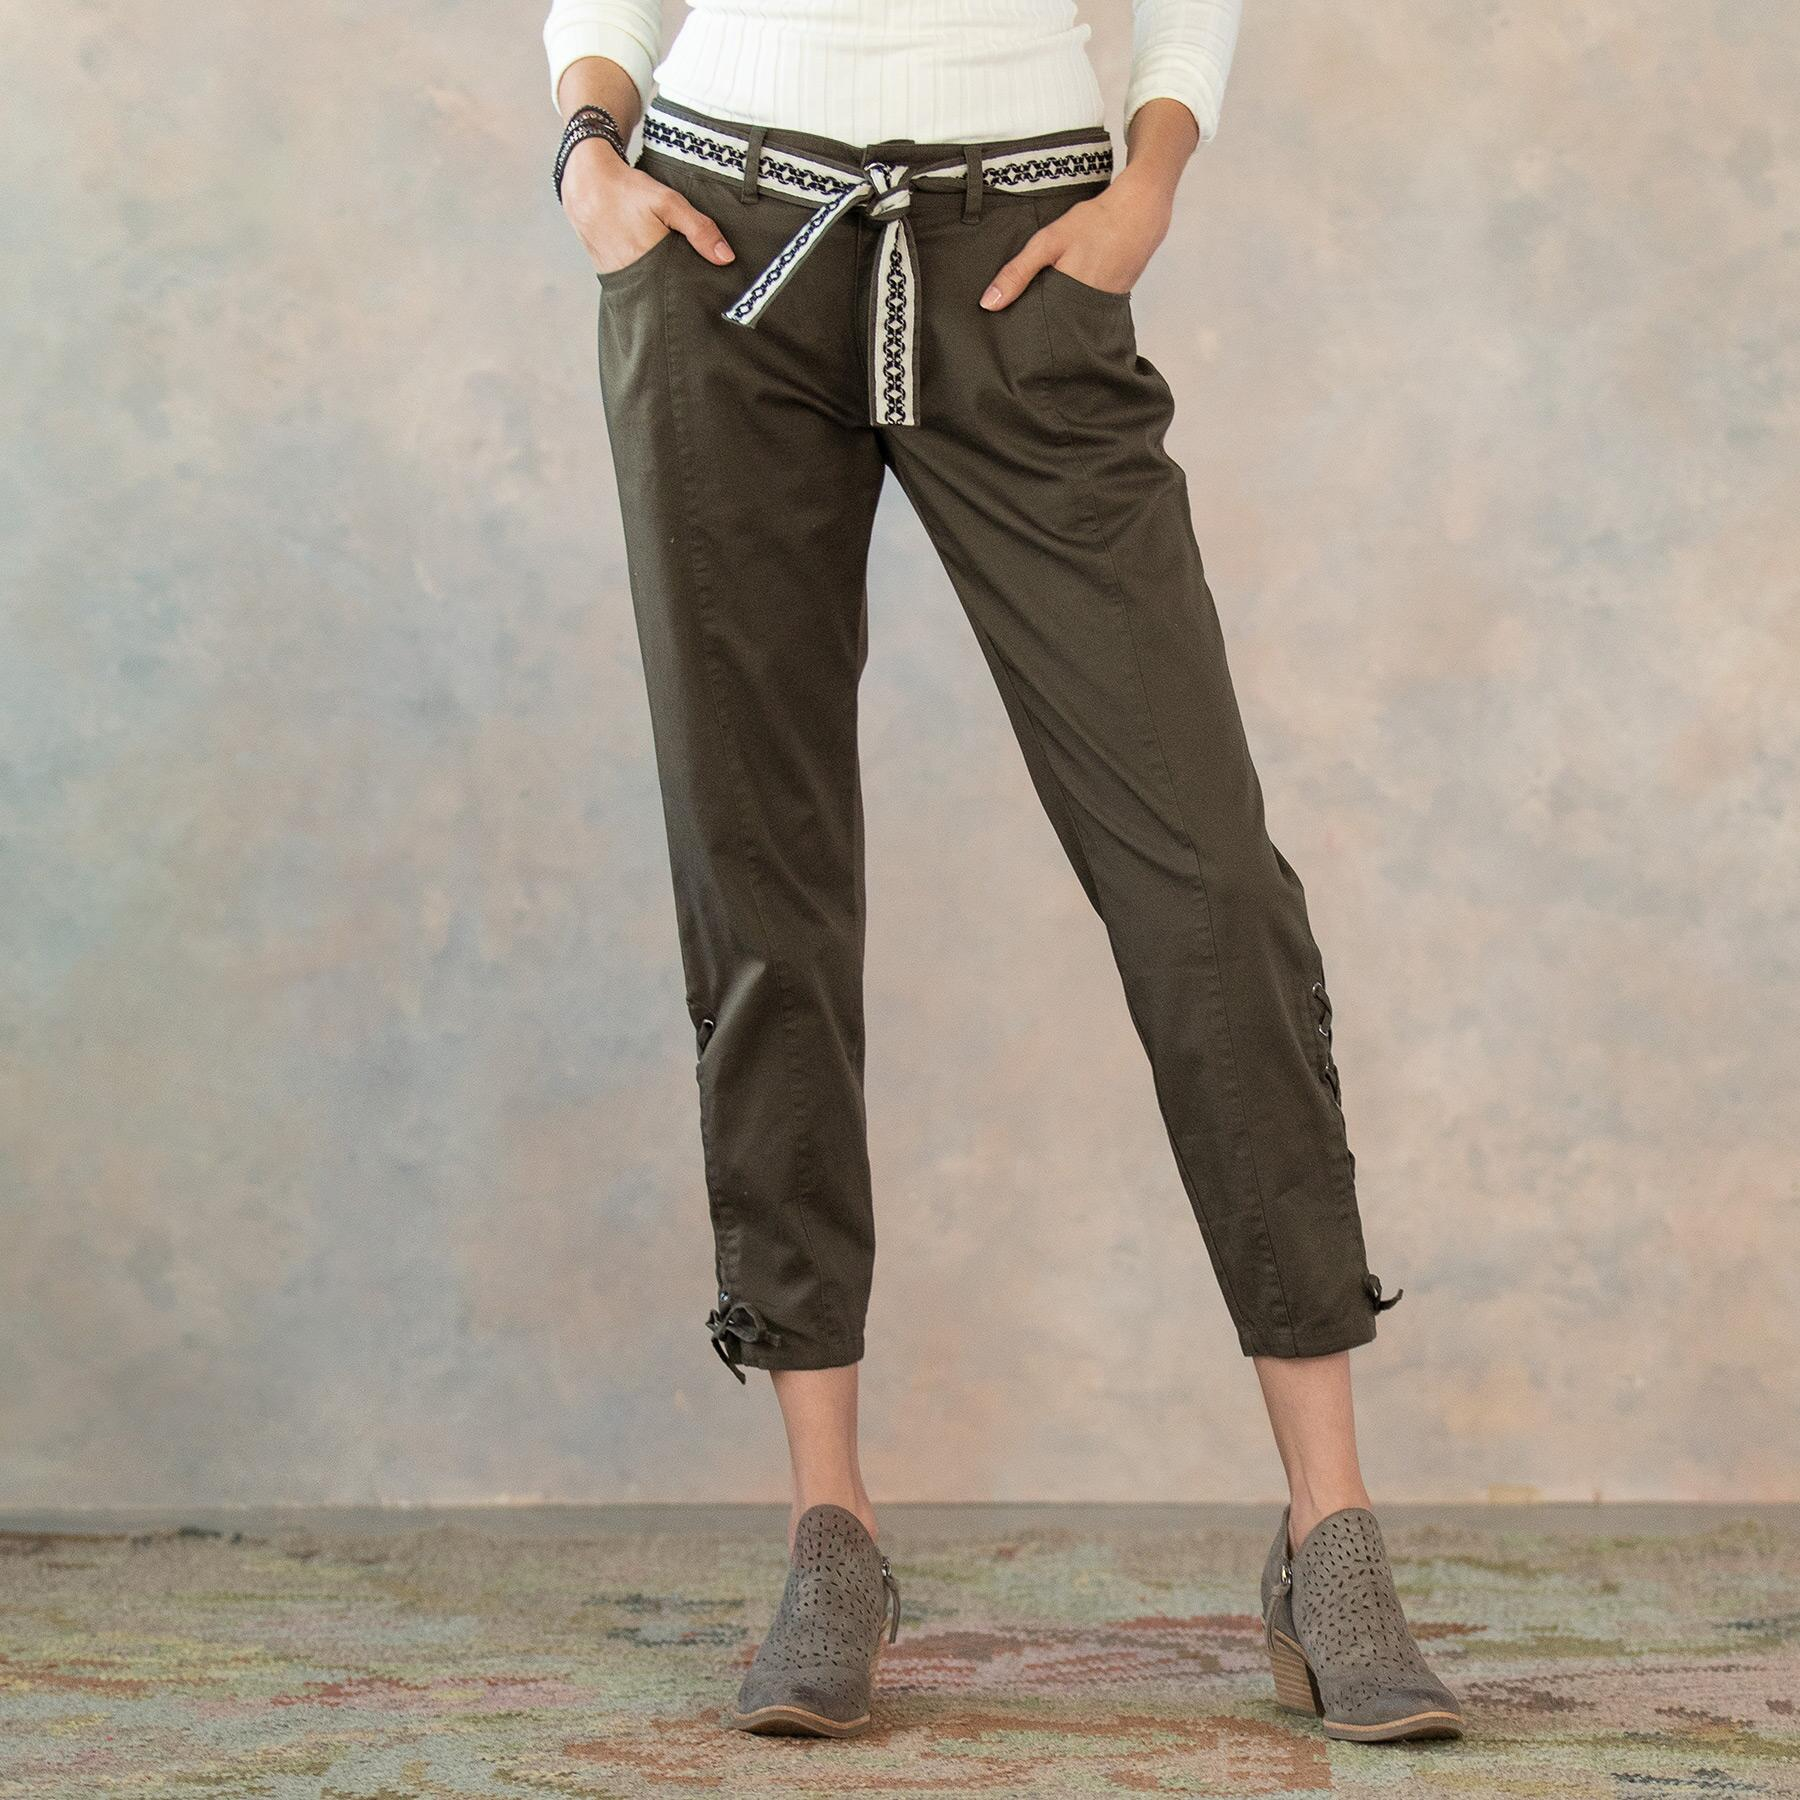 ANKLE DETAIL LACE UP PANTS: View 3